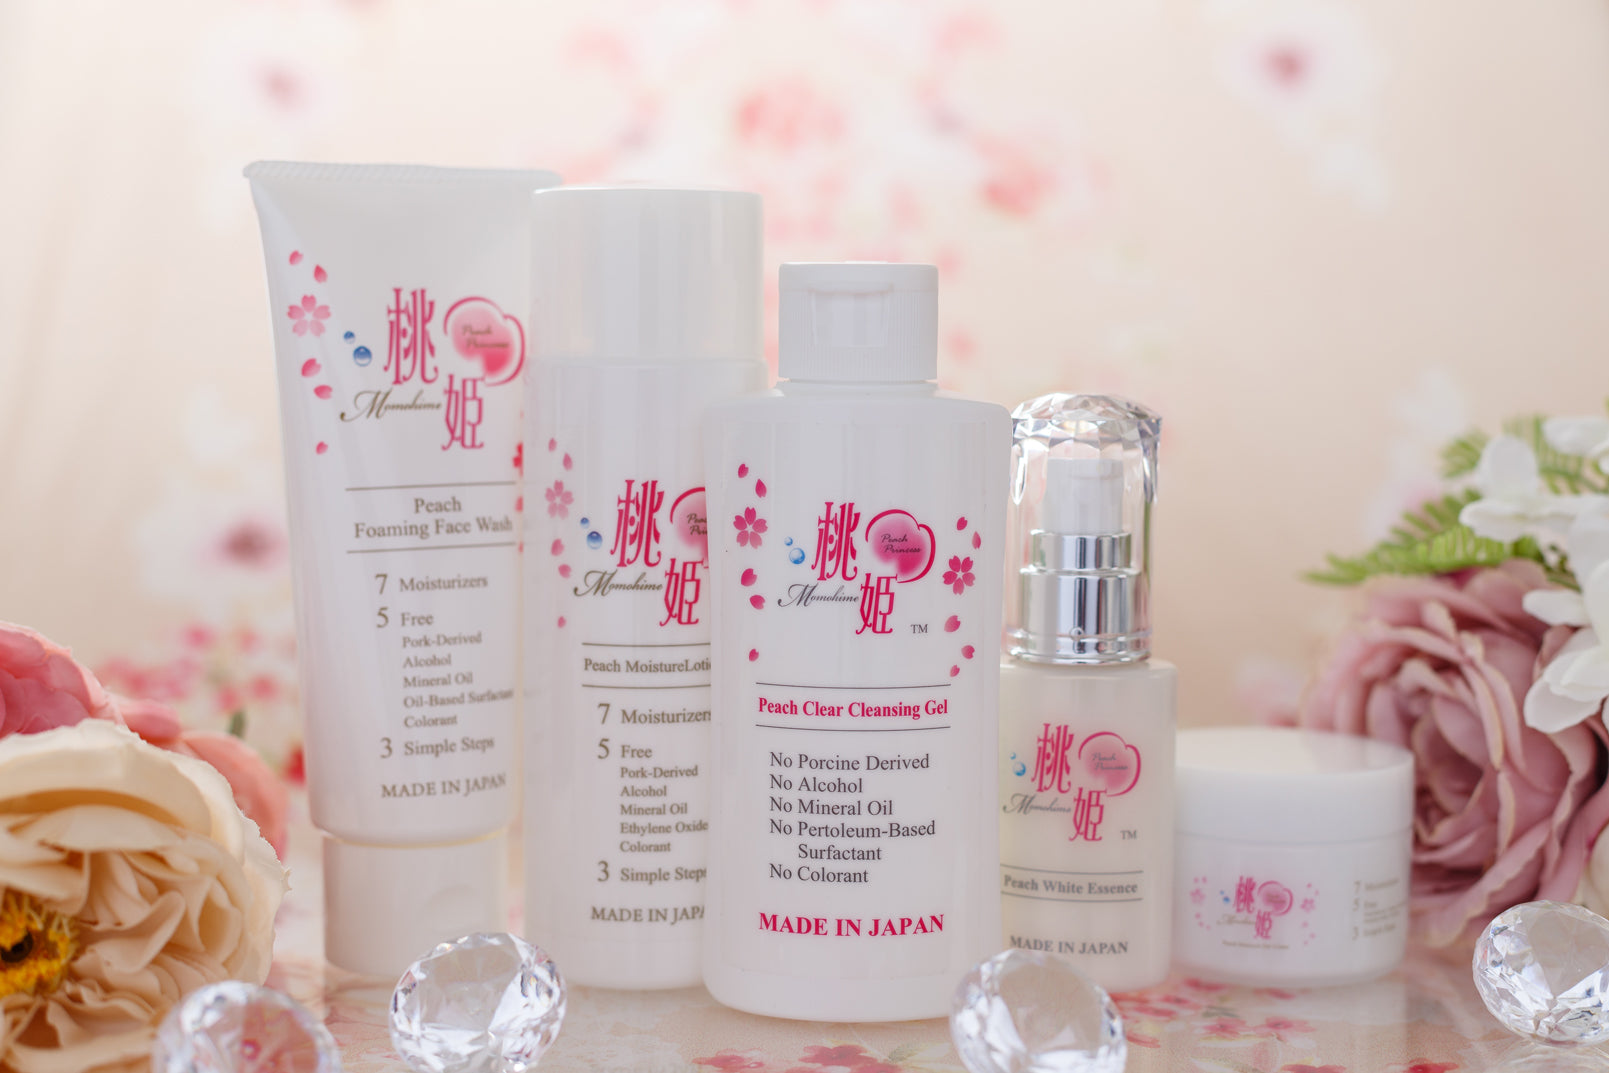 Momohime - Halal skincare from Japan